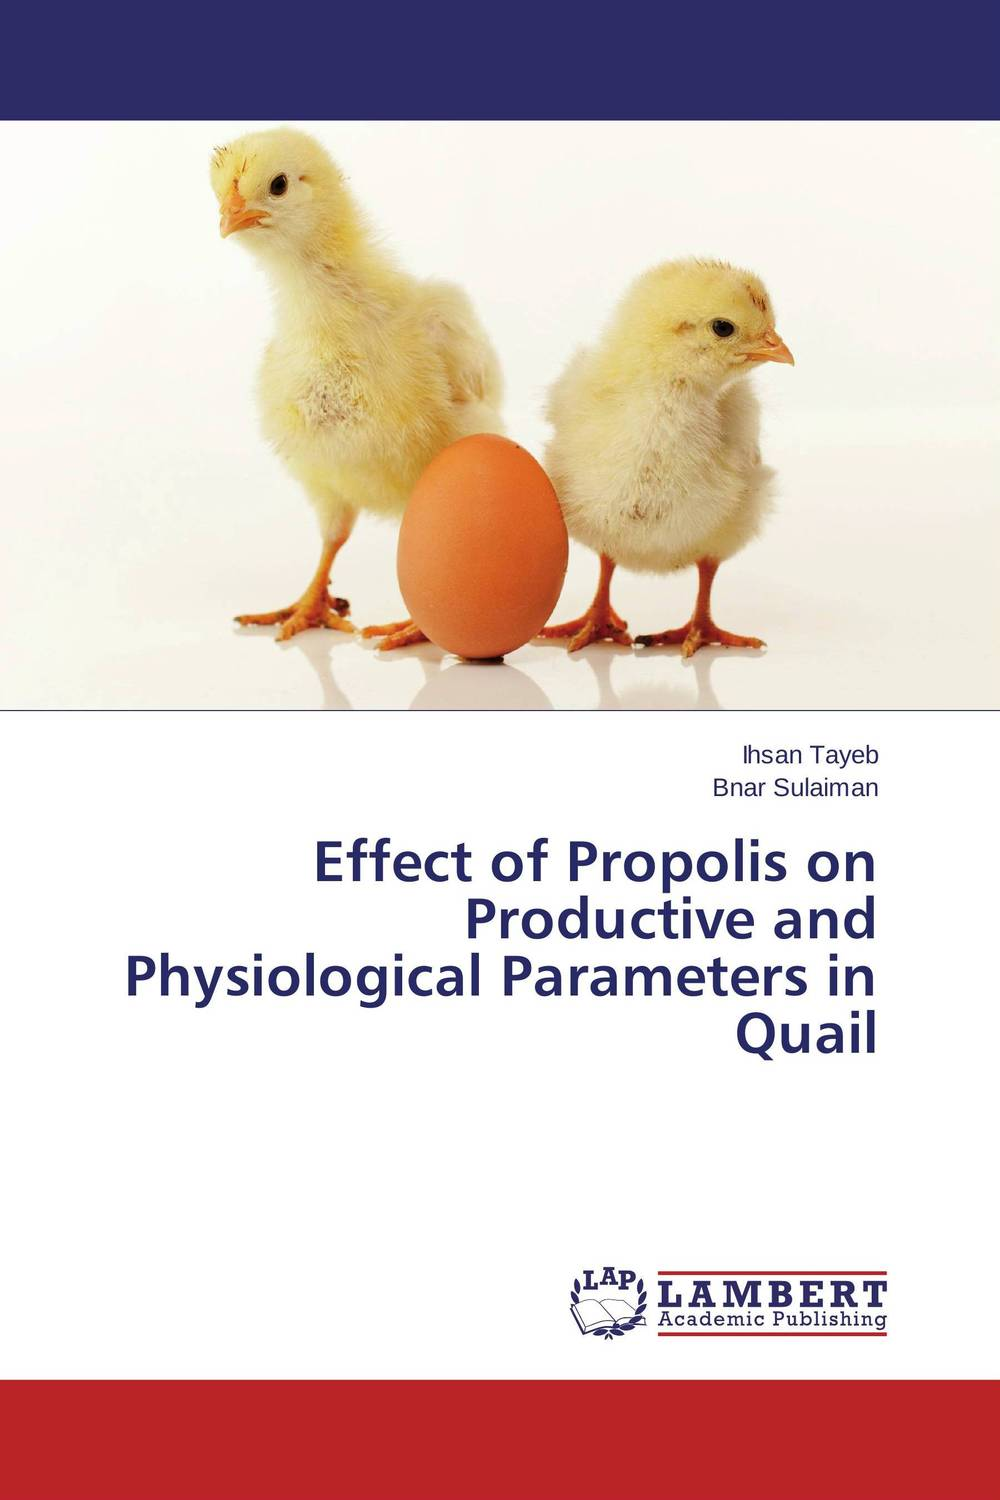 купить Effect of Propolis on Productive and Physiological Parameters in Quail недорого